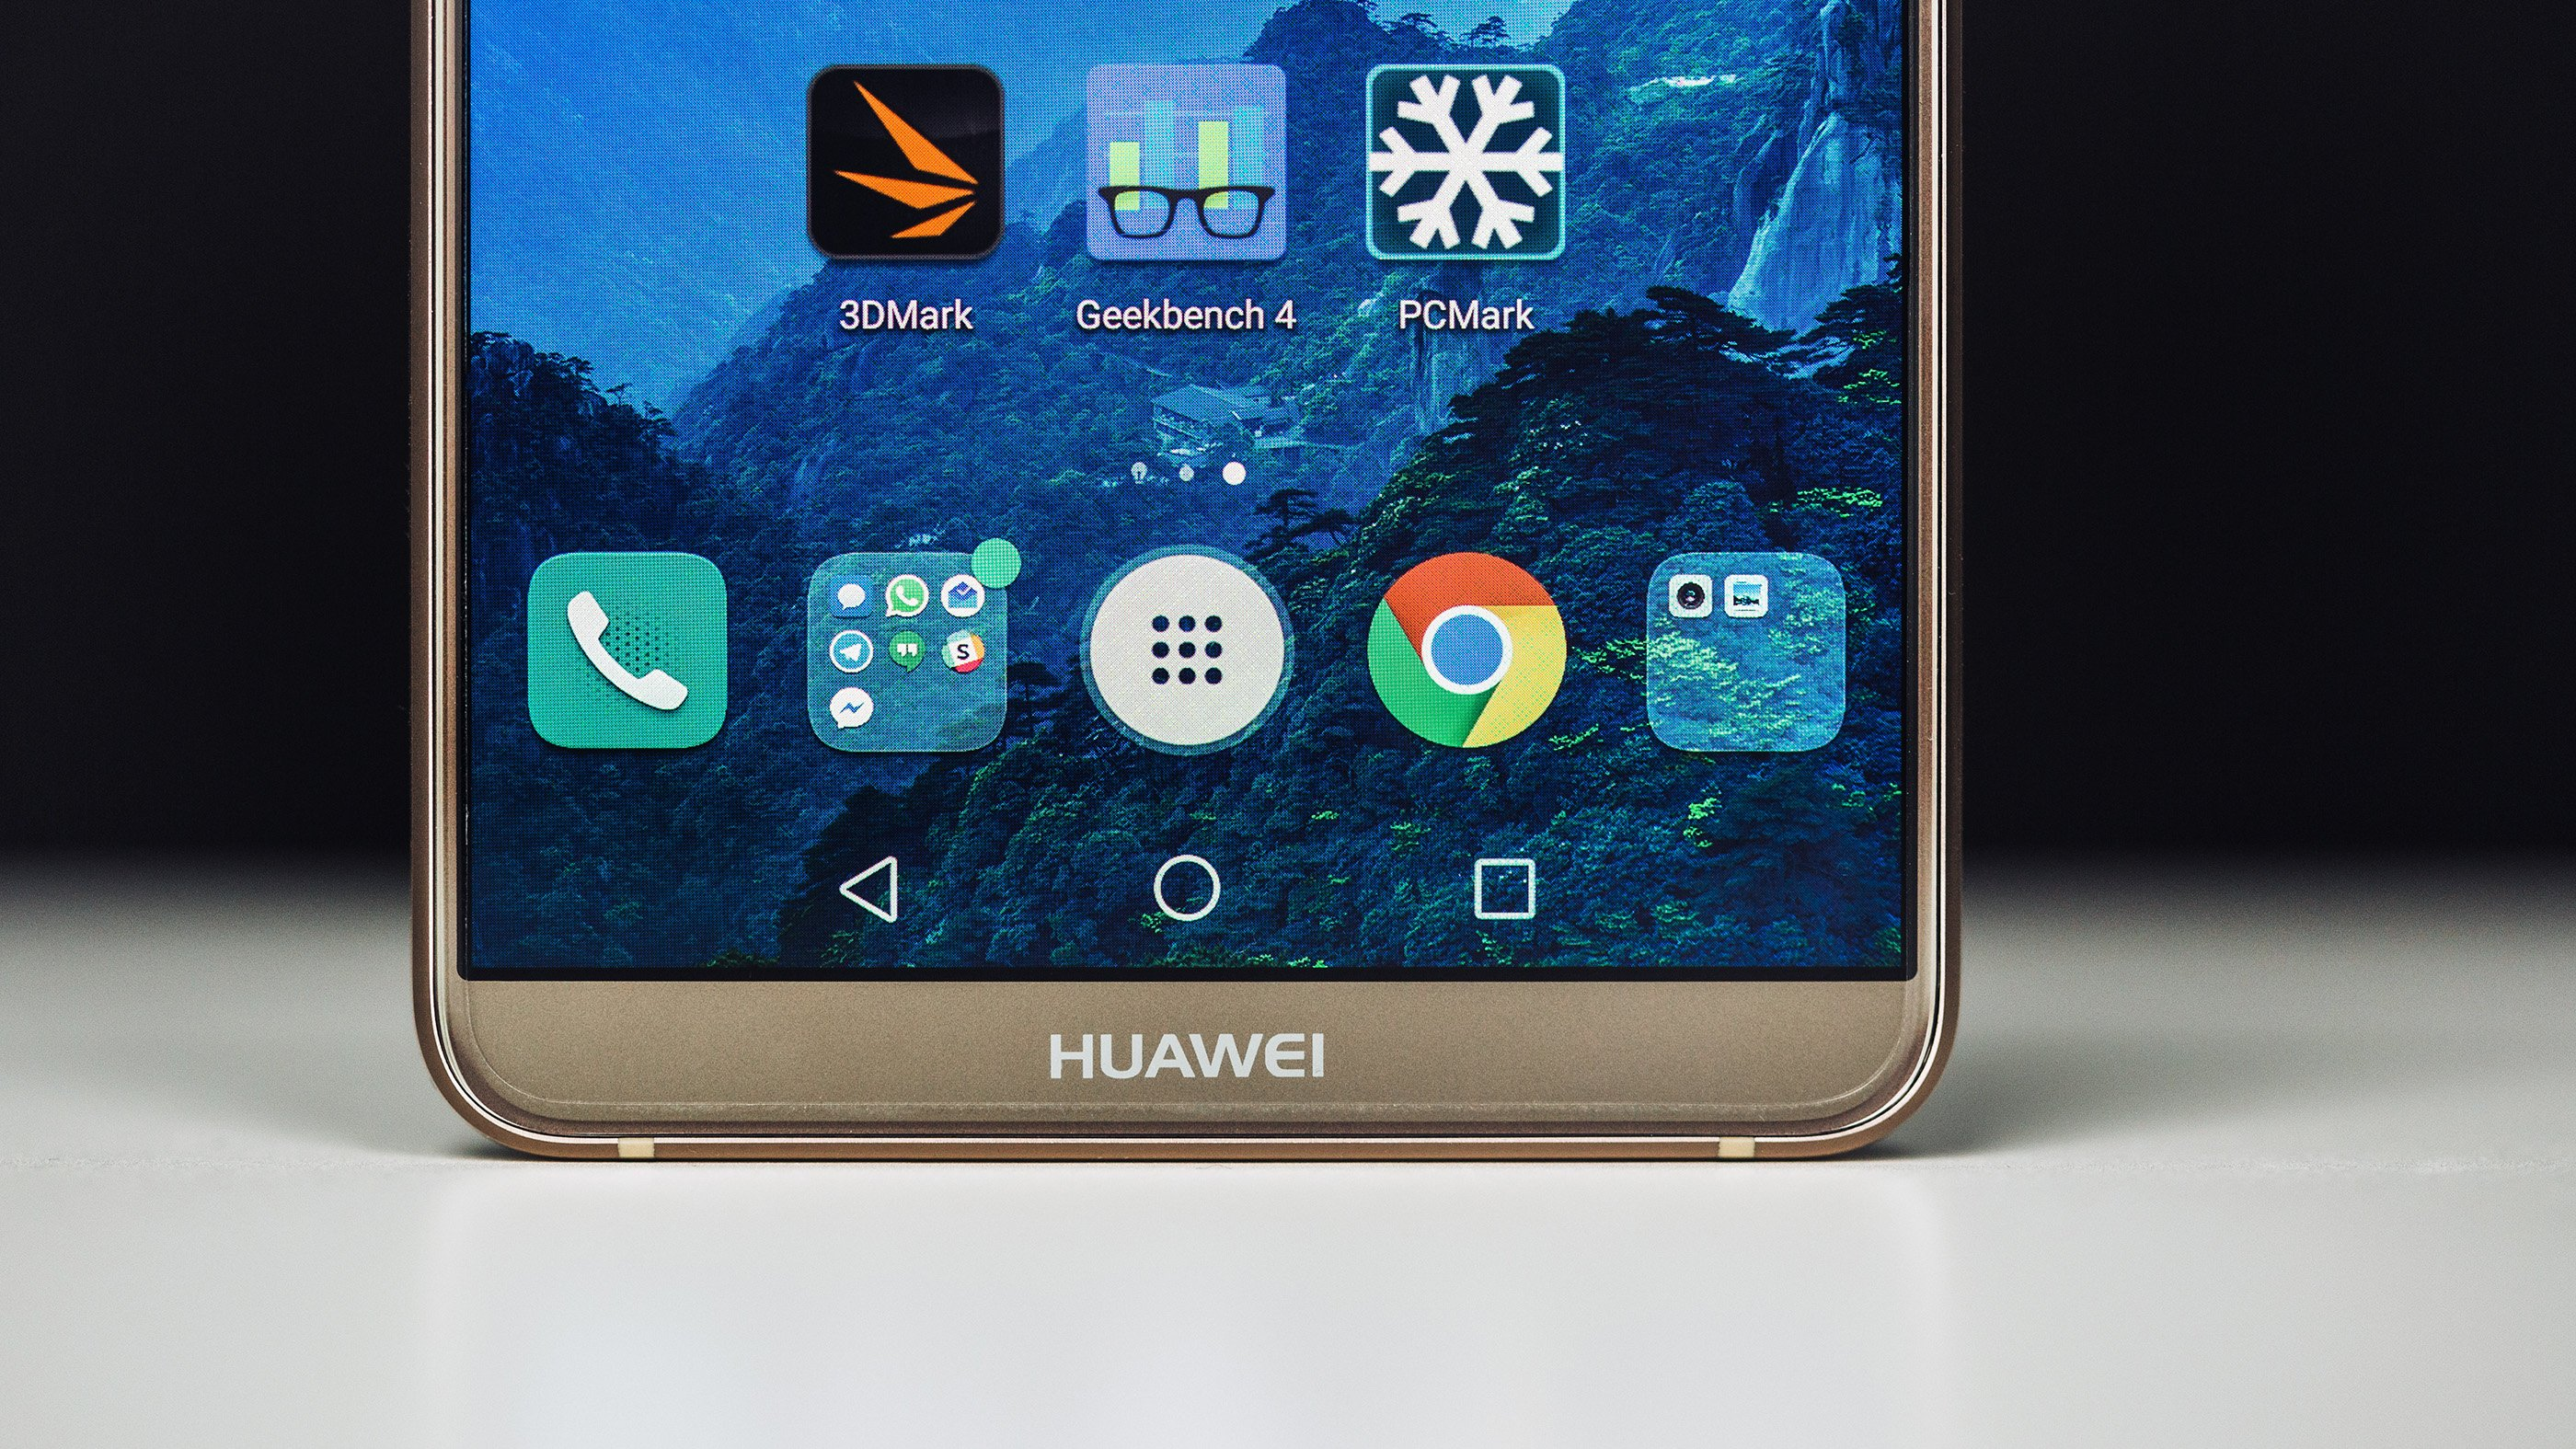 100 days with the Huawei Mate 10 Pro: Not living up to the